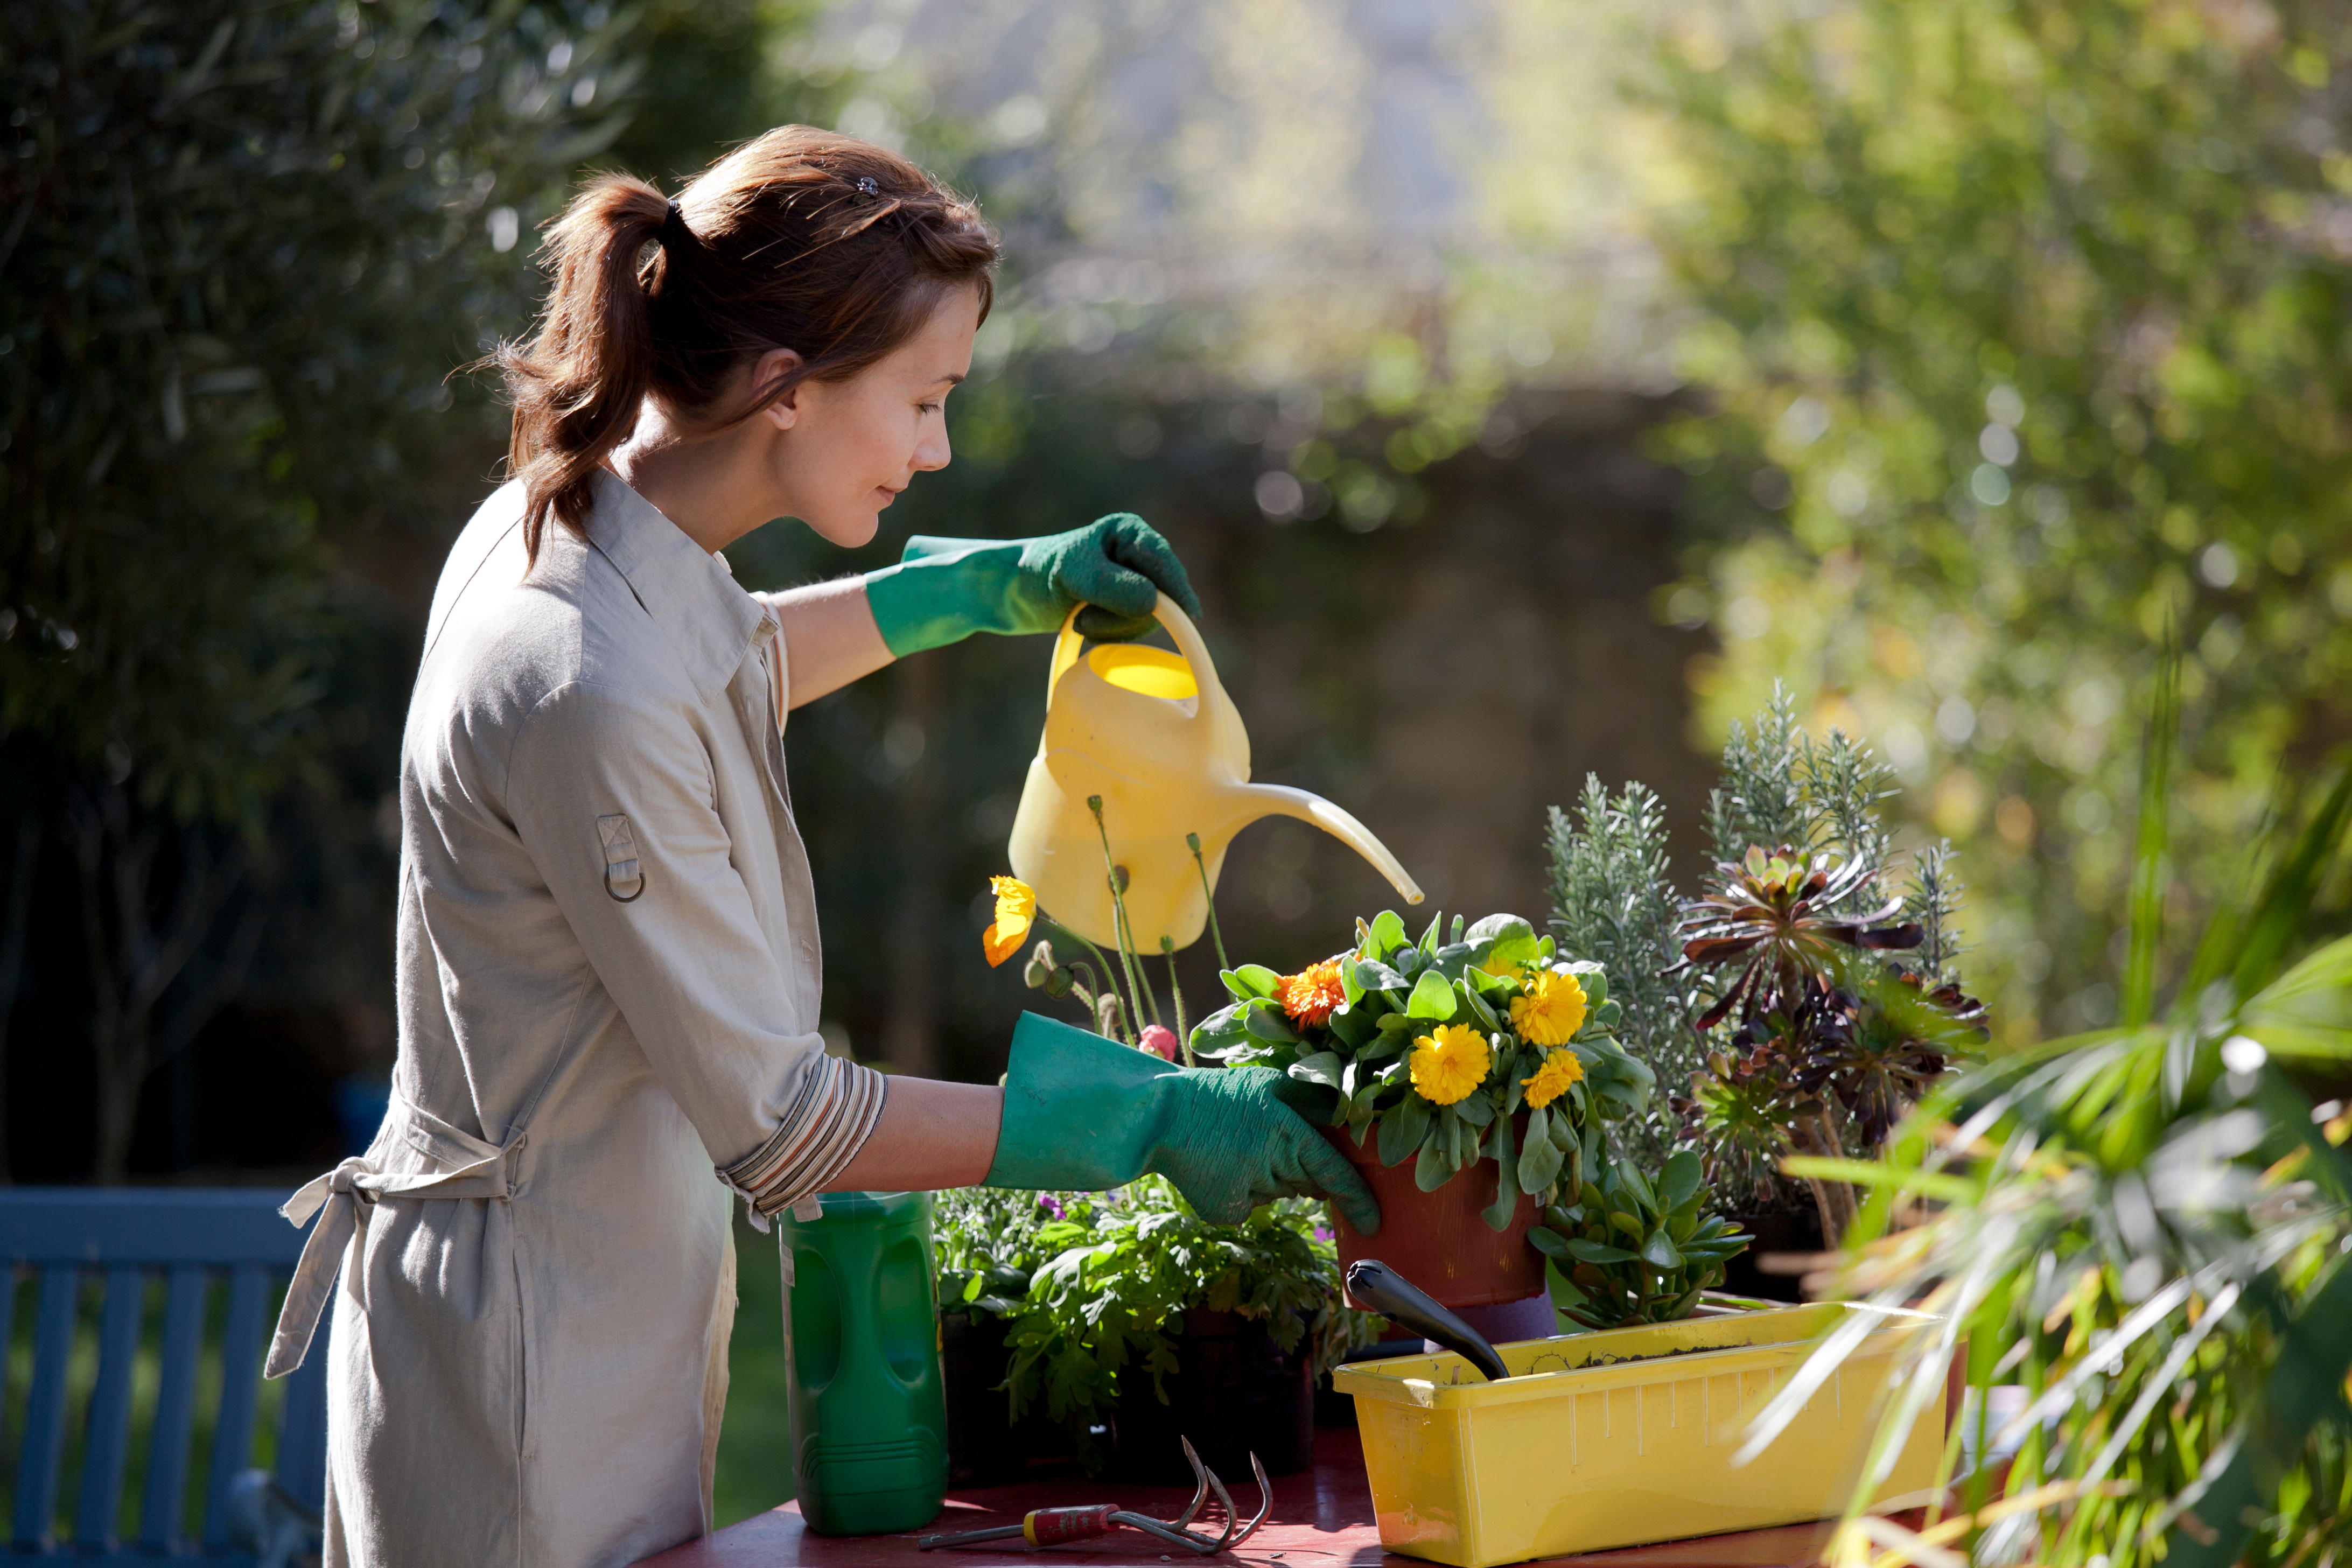 Spring will bring you warm weather and inspiration to spring clean your property.